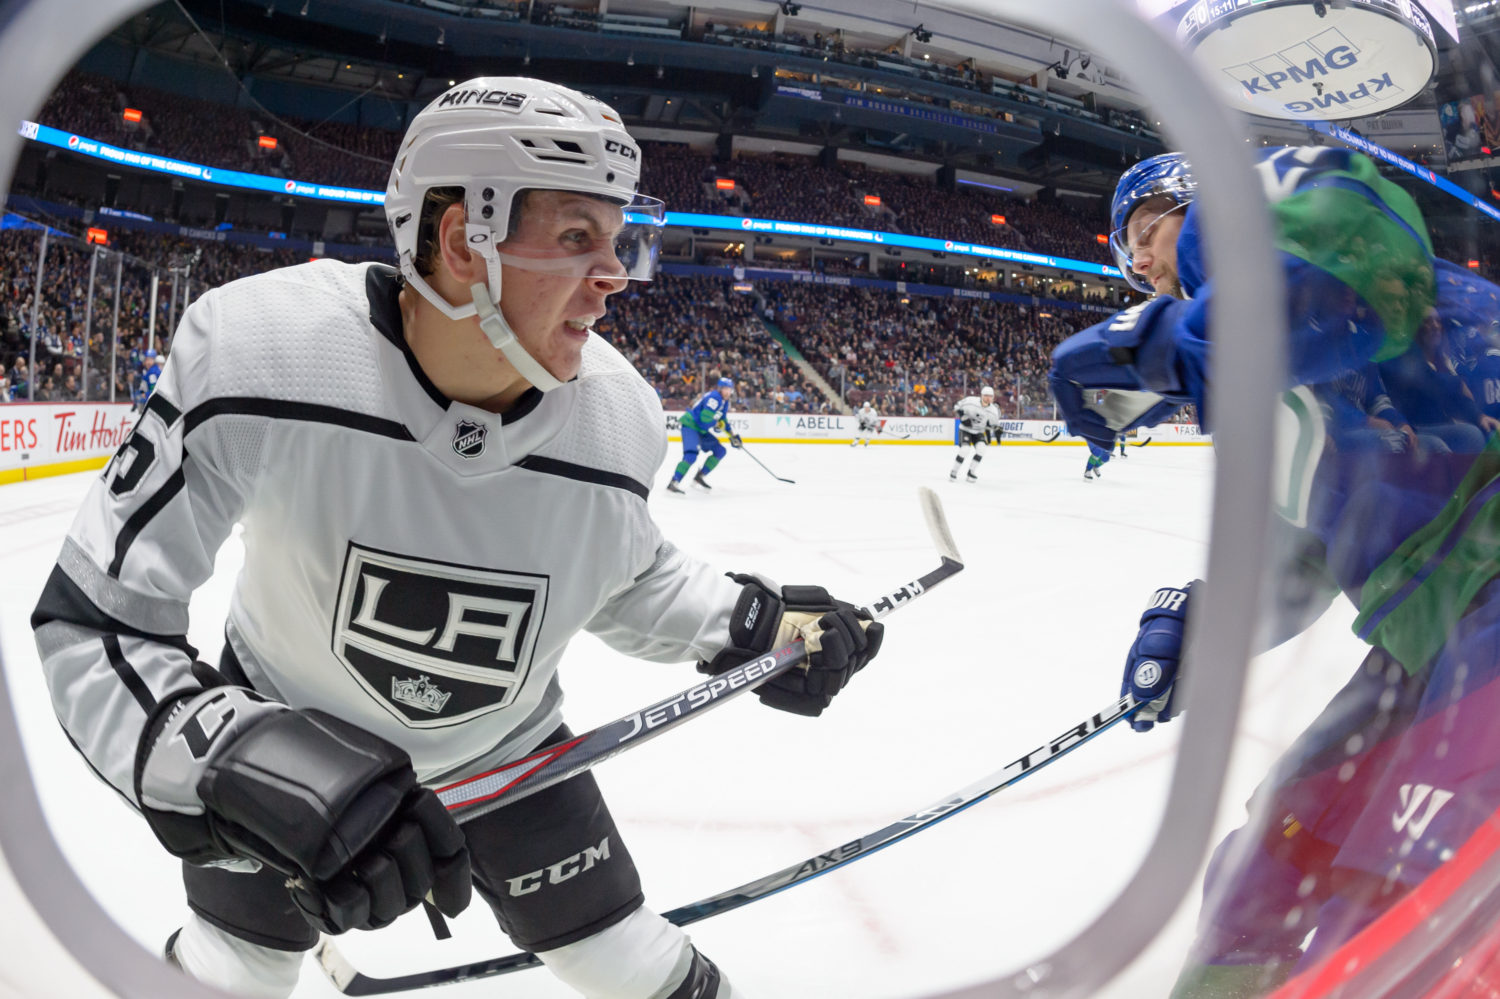 Lizotte to Ontario; prior to injury, his line was clicking - LA Kings Insider